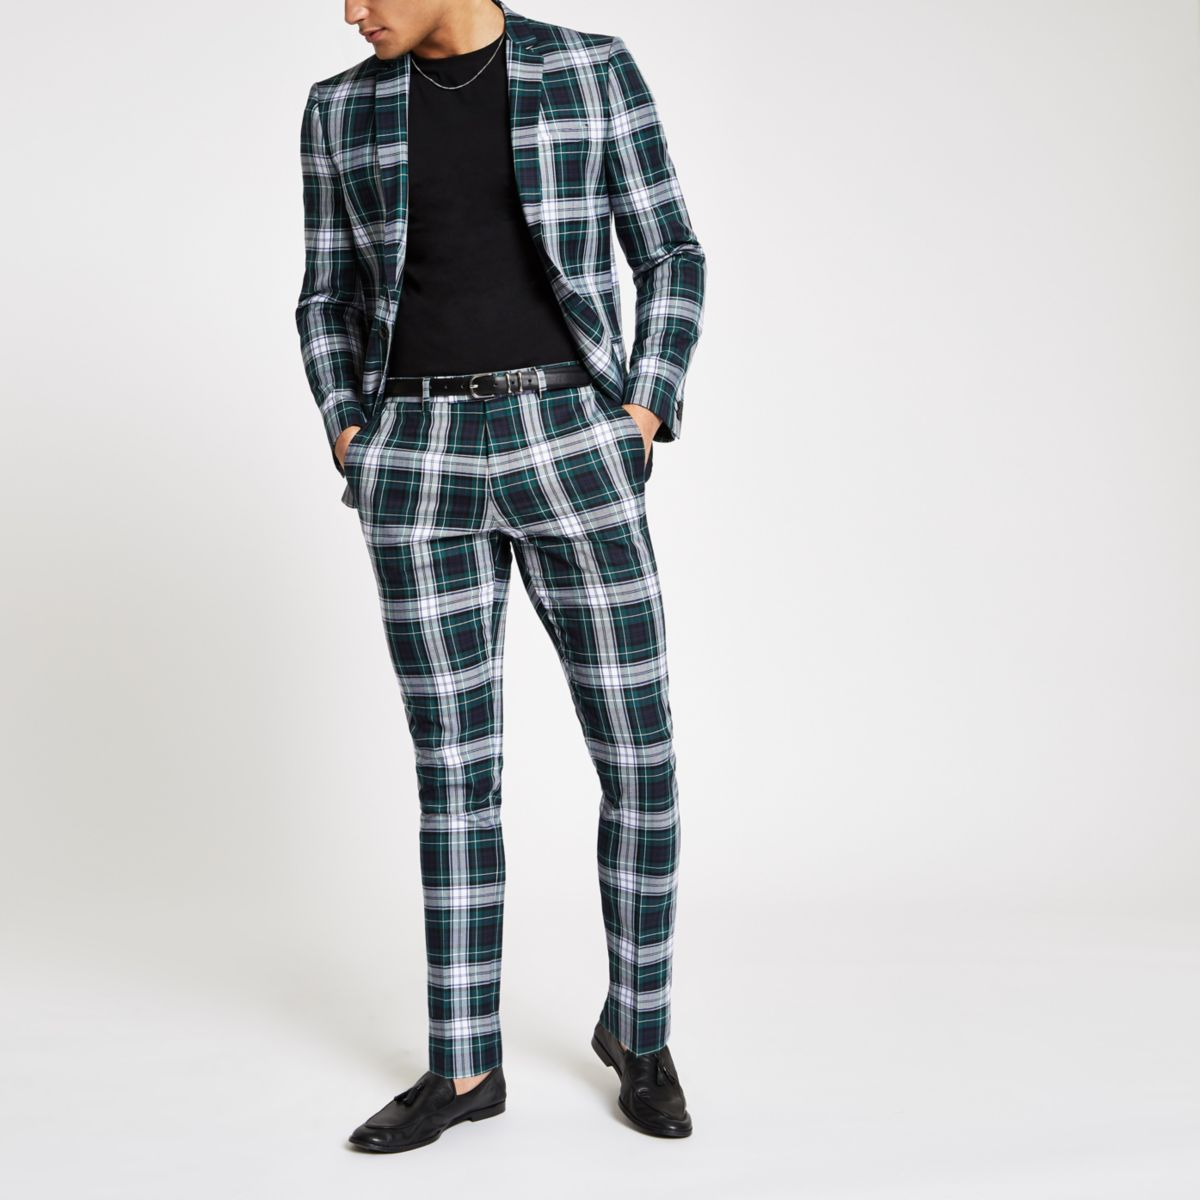 Green plaid skinny fit suit pants